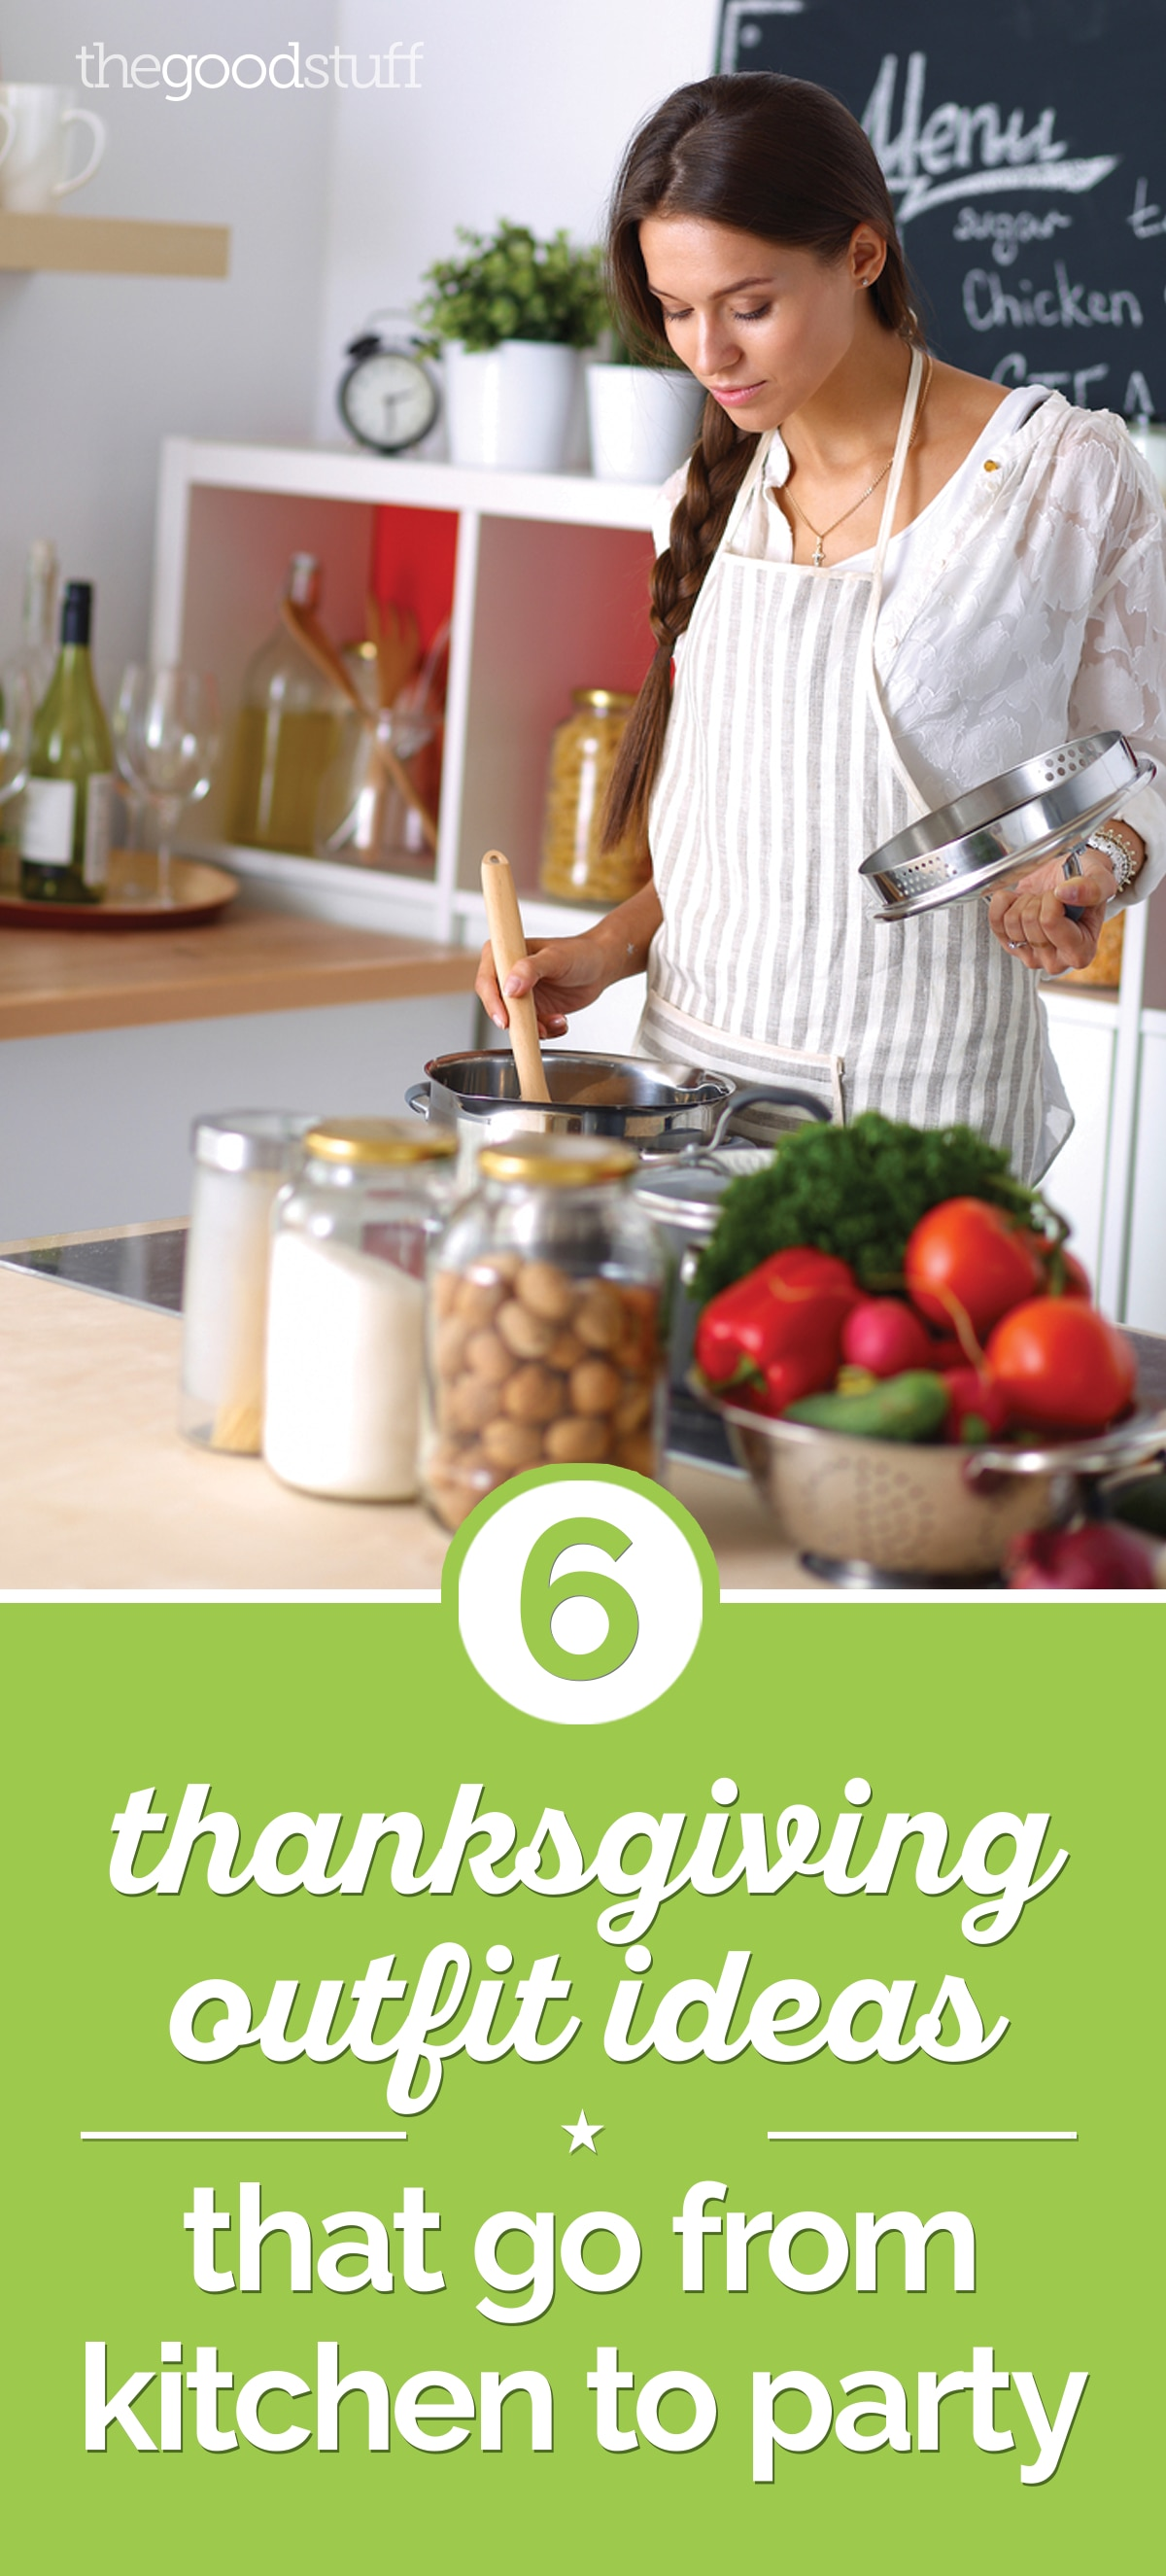 6 Thanksgiving Outfit Ideas That Go from Kitchen to Party | thegoodstuff